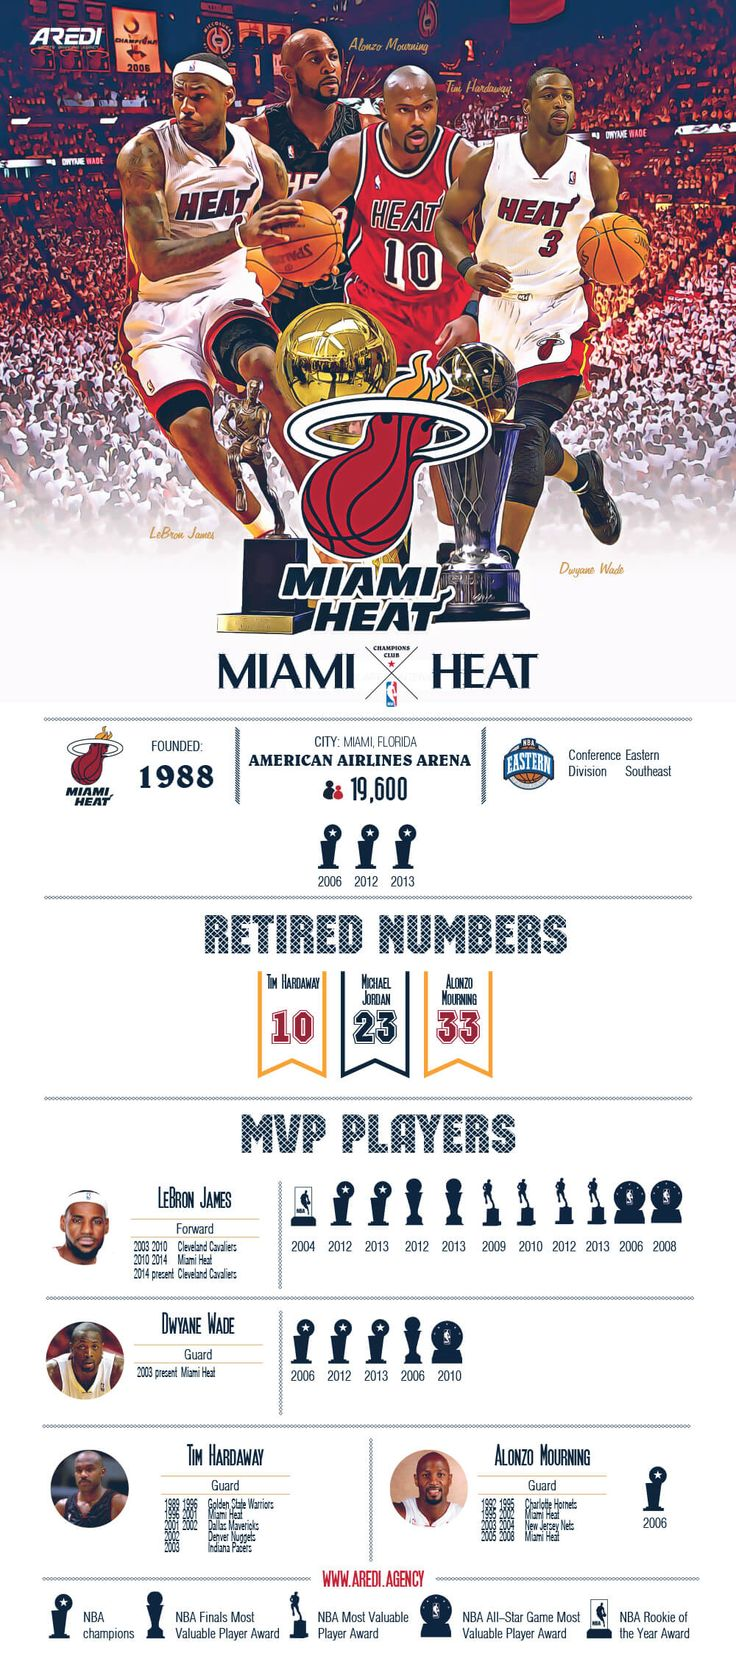 Miami Heat, Heat, infographic, art, sport, create, design, basketball, club, champion, branding, NBA, MVP legends, histoty, All Star game, NBA Rookie of the Year, LeBron James, Dwyane Wade, Tim Hardaw (Basketball Art)